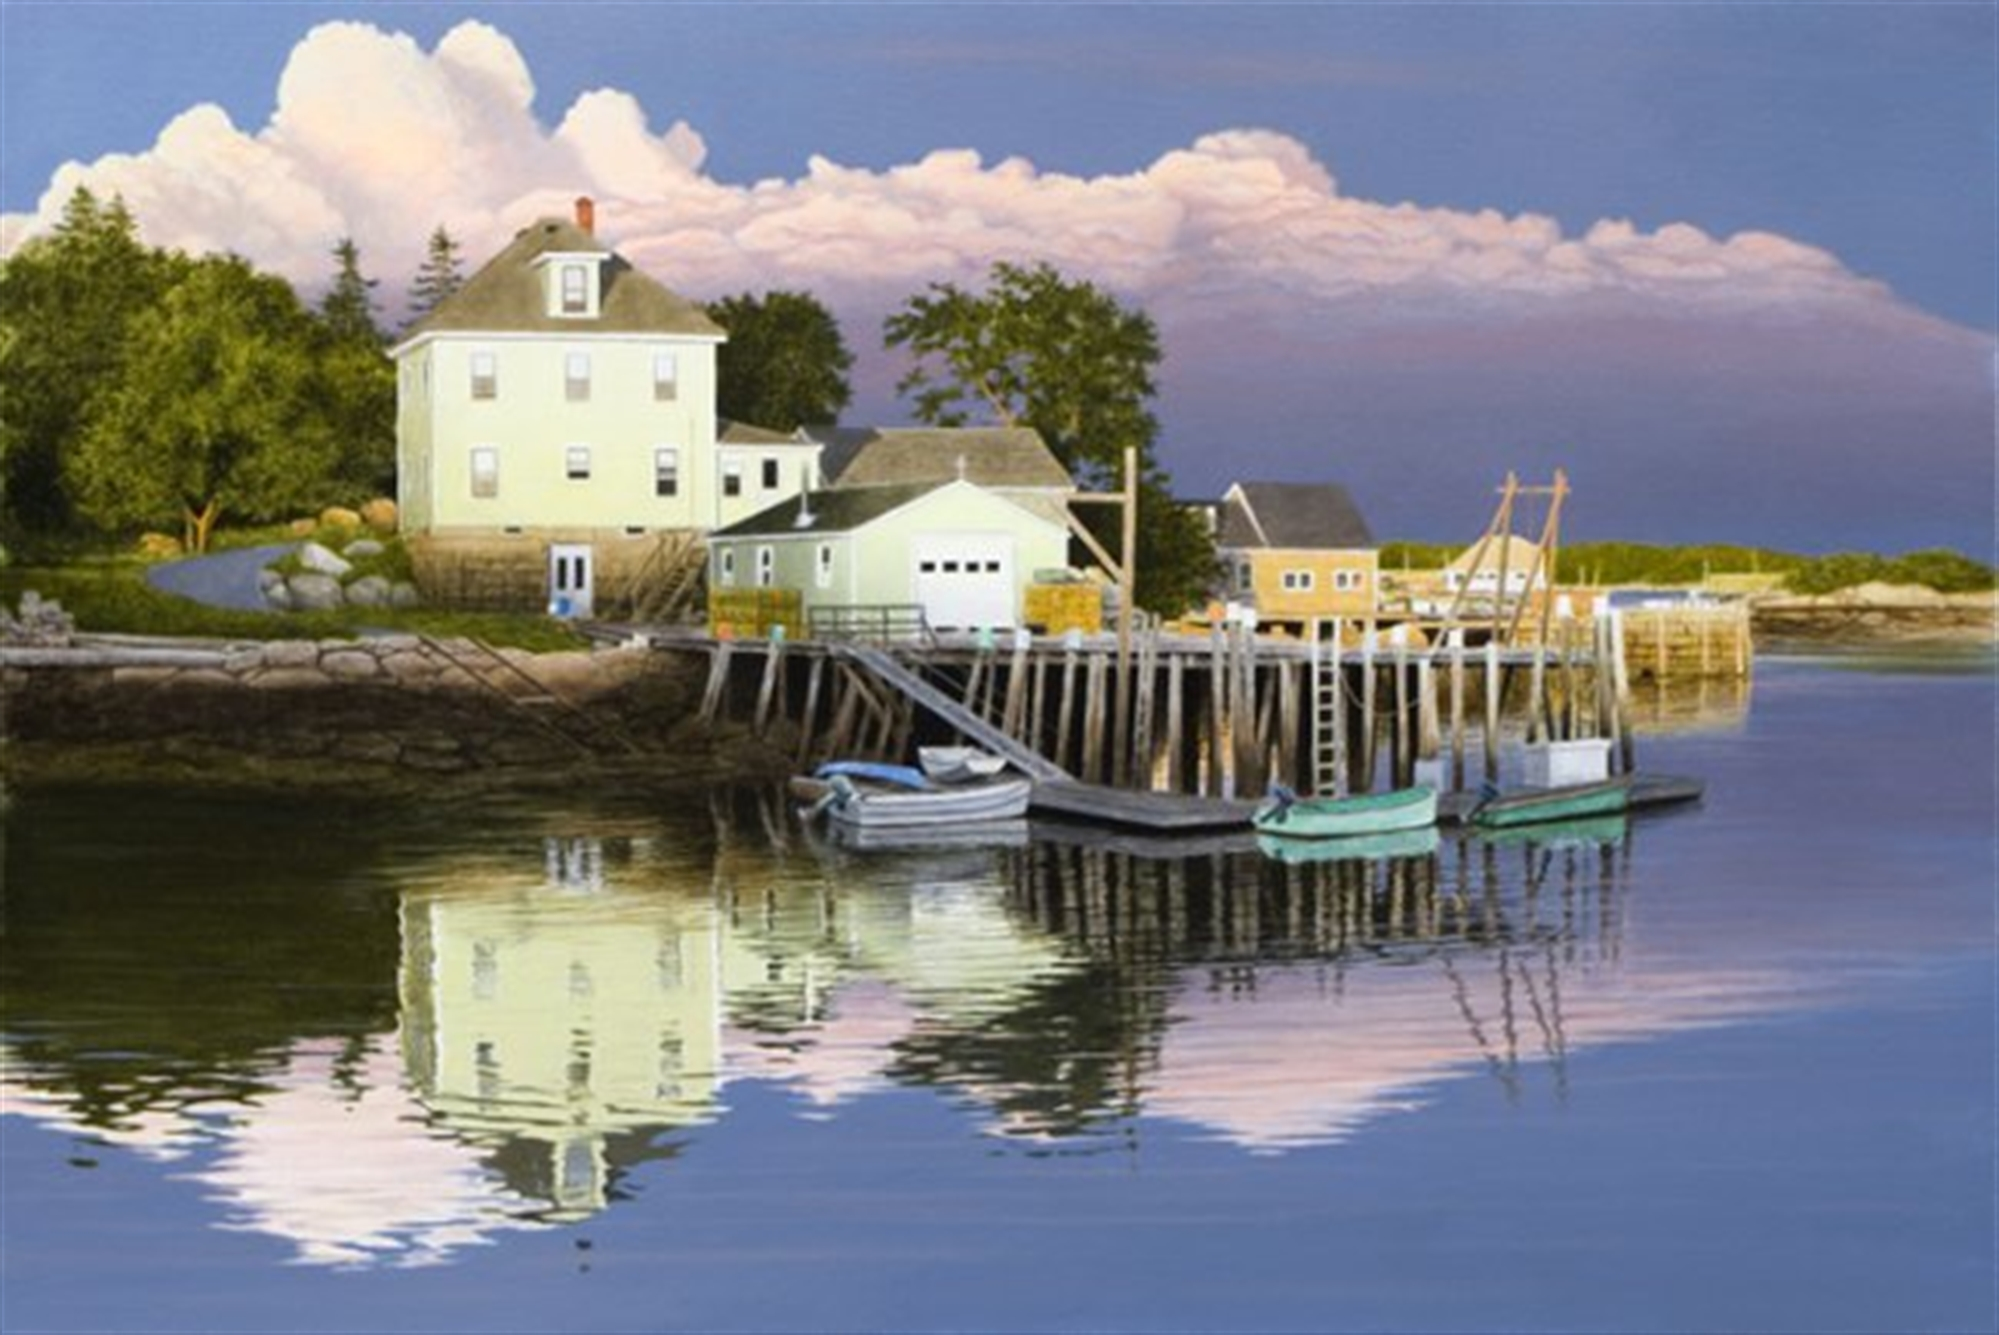 Late Evening in Maine by Alexander Volkov